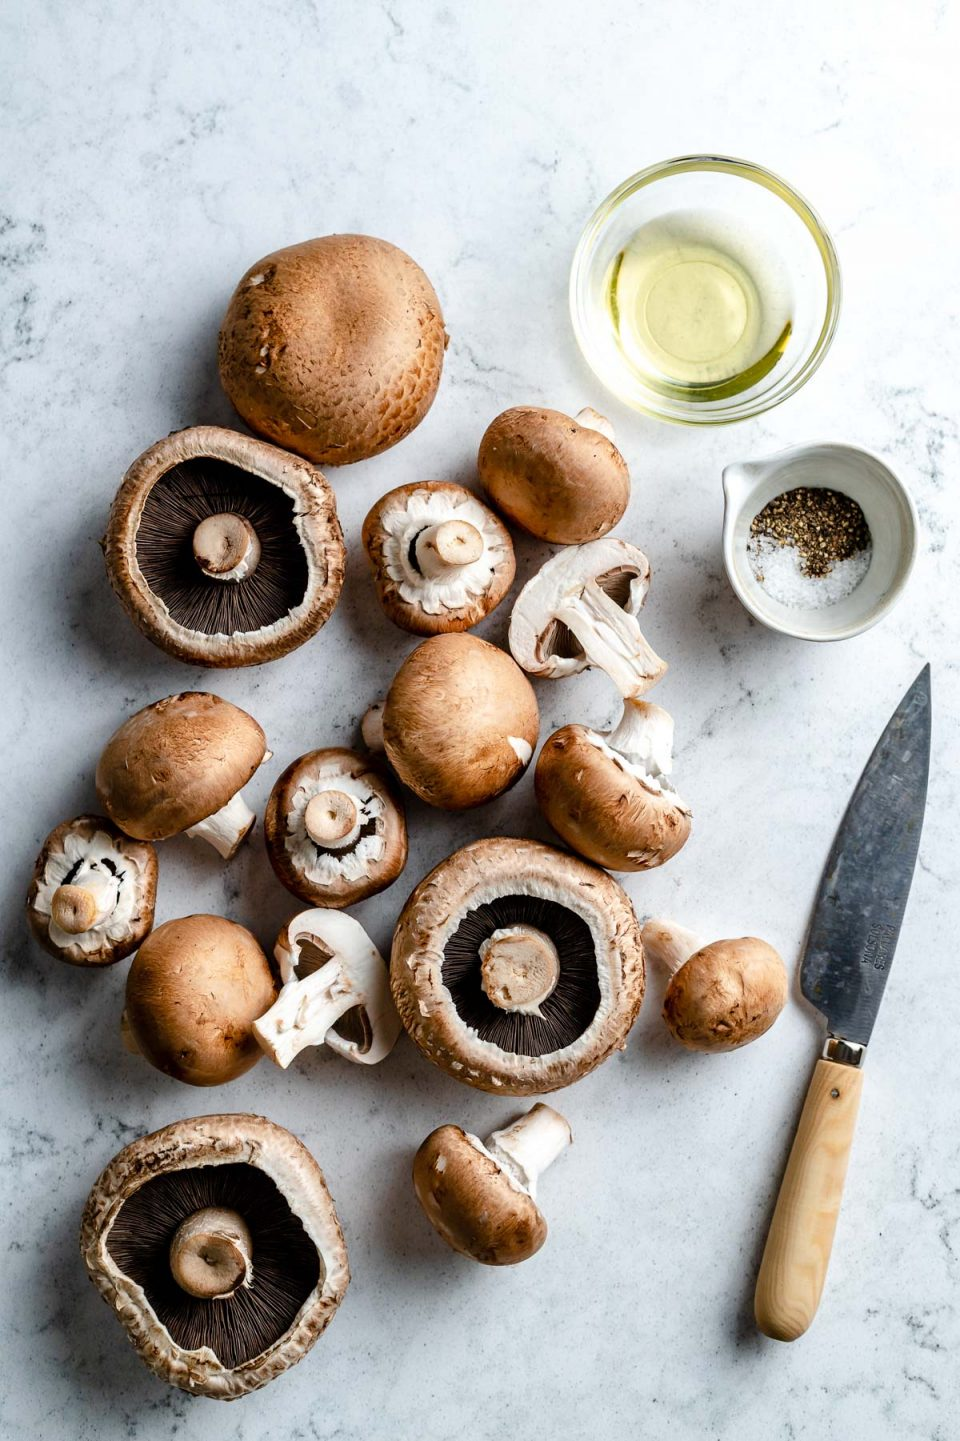 Grilled mushroom ingredients arranged on a white & grey marble surface - whole portobello & cremini mushrooms with a few sliced cremini mushrooms, avocado oil, kosher salt, & ground black pepper. A pairing knife rests on the surface next to the ingredients.